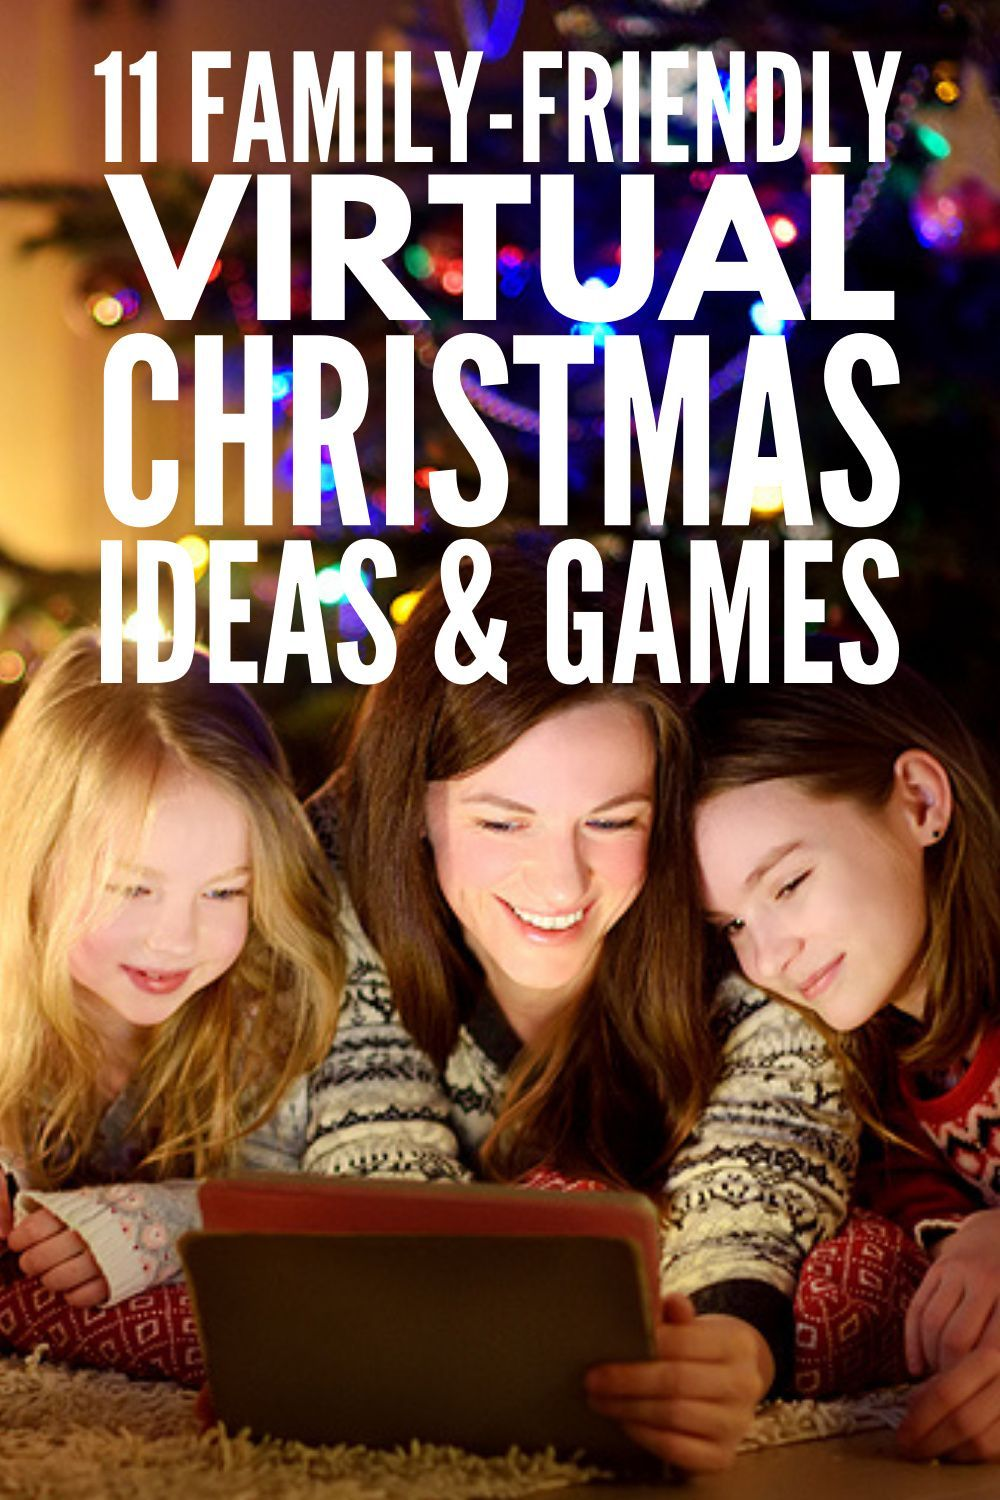 Online Celebrations 11 Family Virtual Christmas Celebration Ideas In 2020 Christmas Gifts For Parents Family Christmas Party Christmas Celebrations